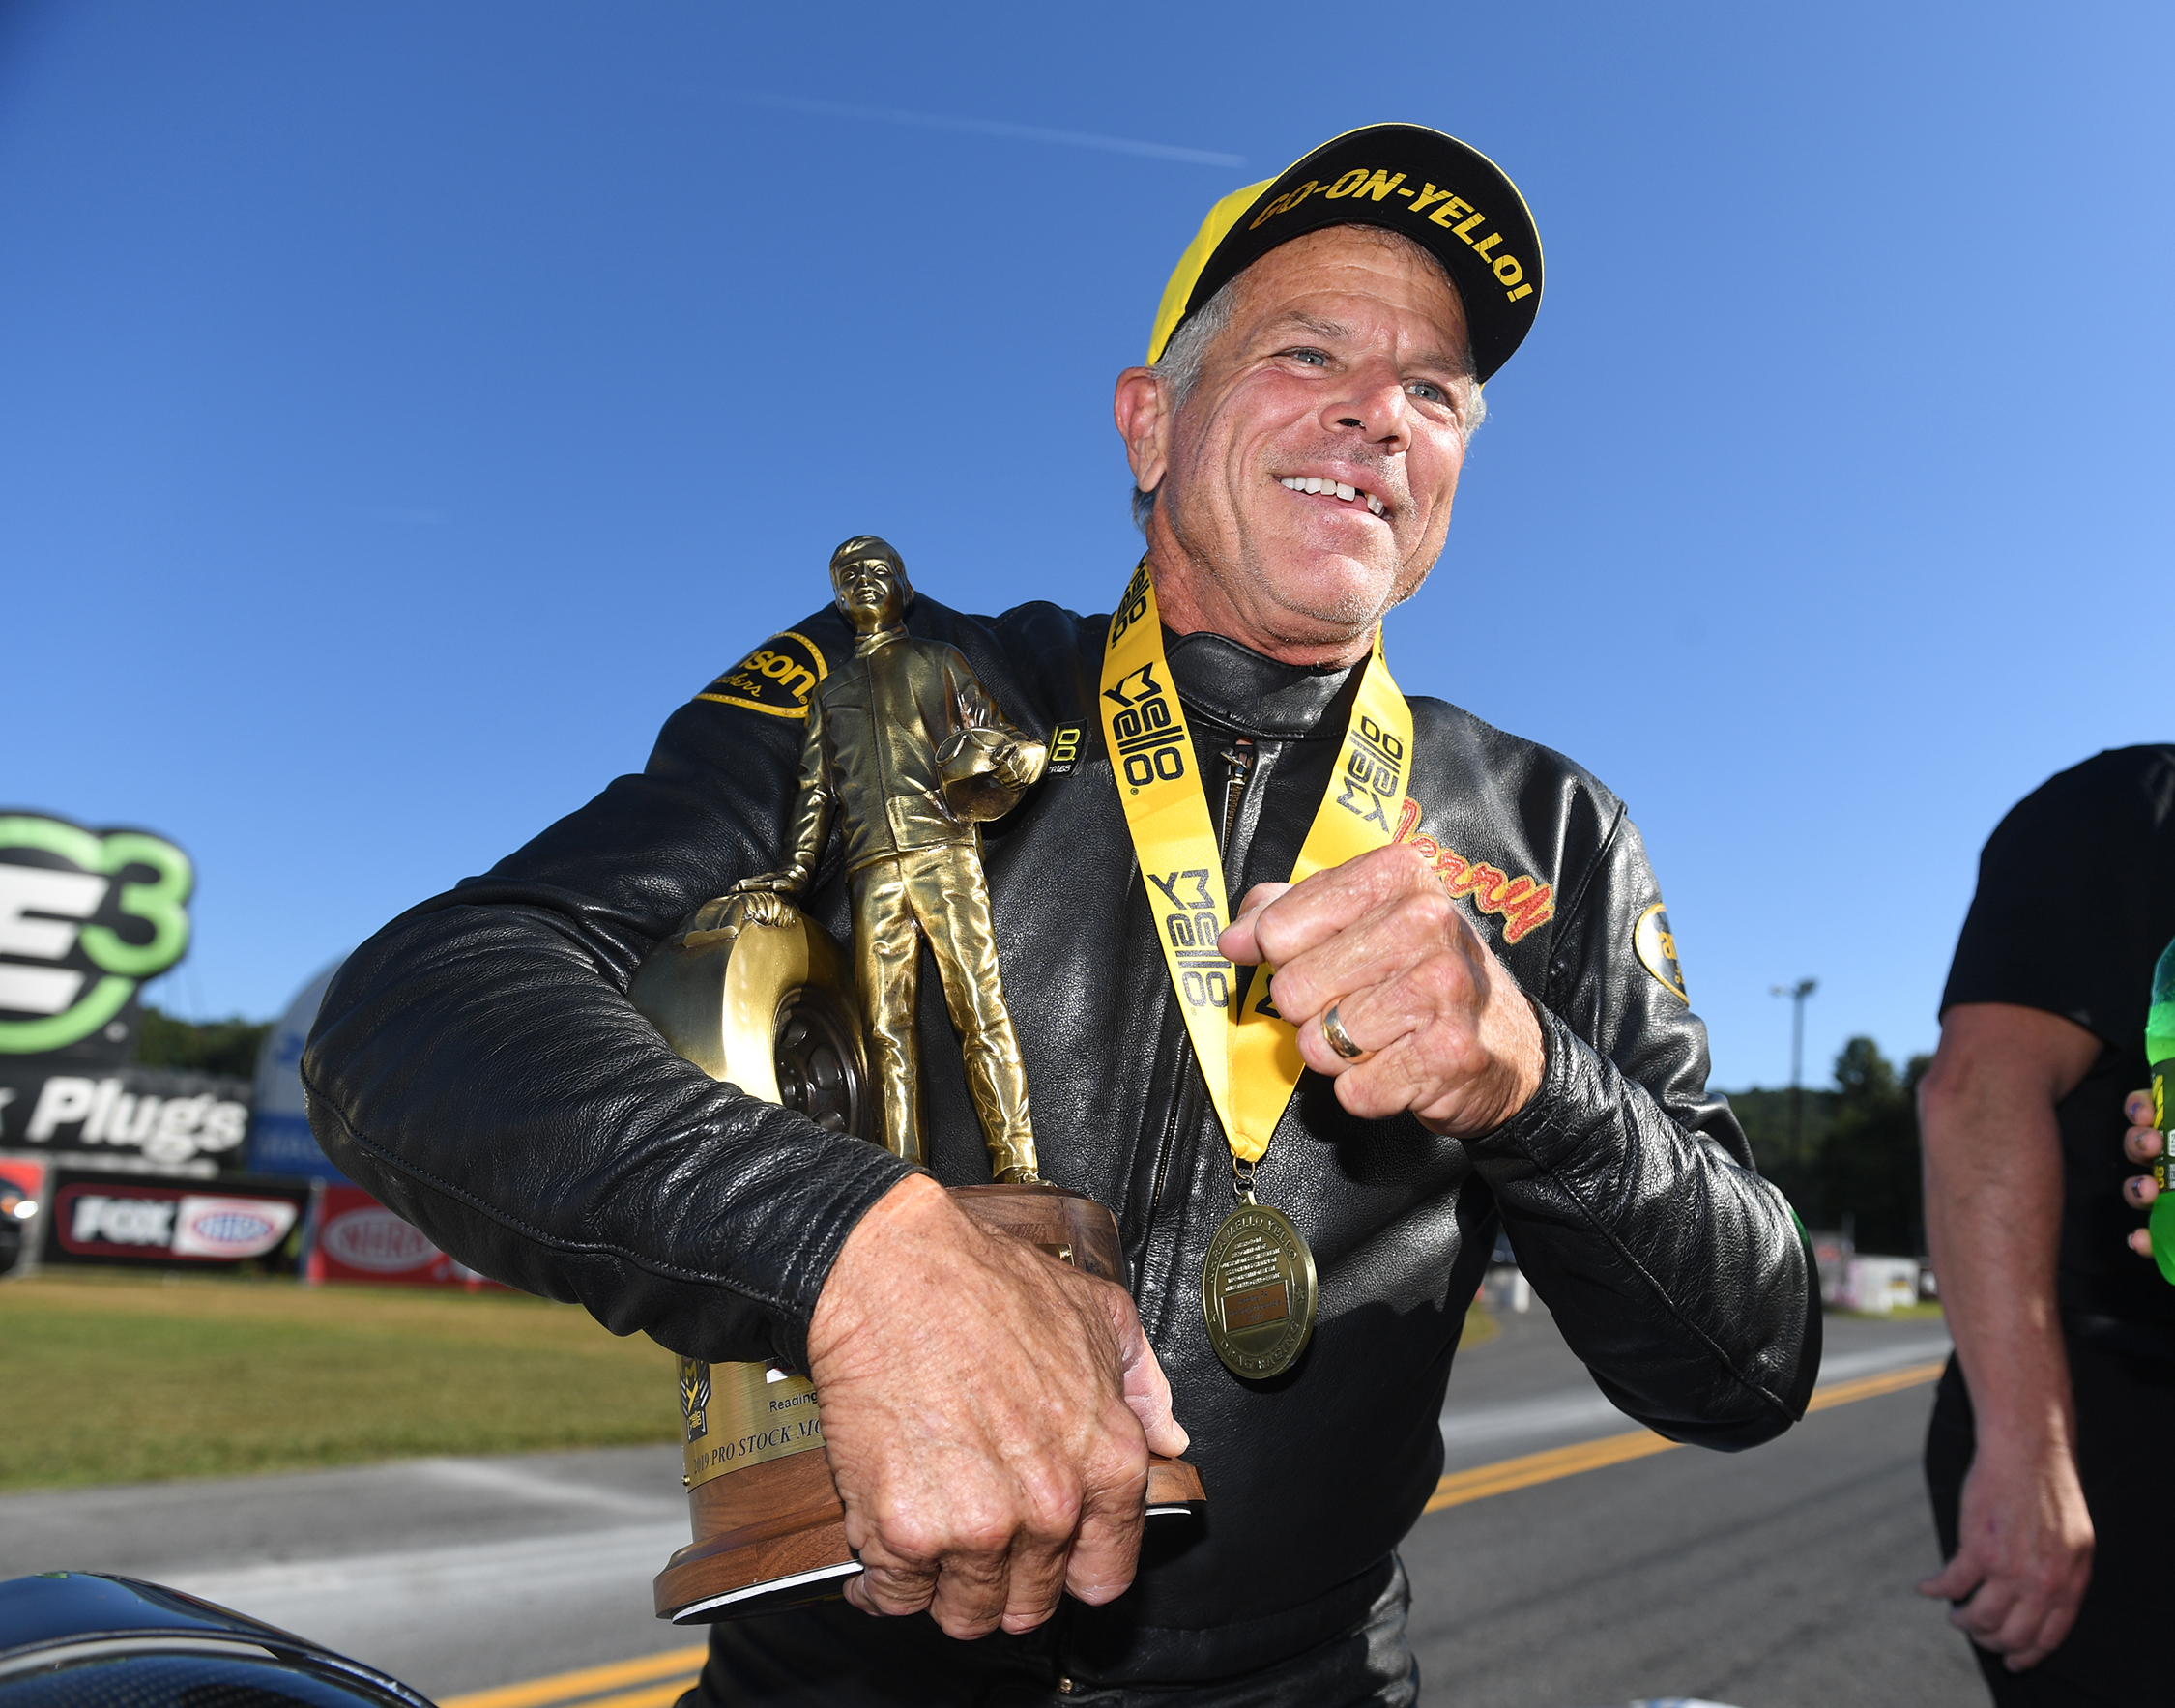 White Alligator Racing Pro Stock Motorcycle rider Jerry Savoie with the Wally after winning the Mopar Express Lane NHRA Nationals presented by Pennzoil